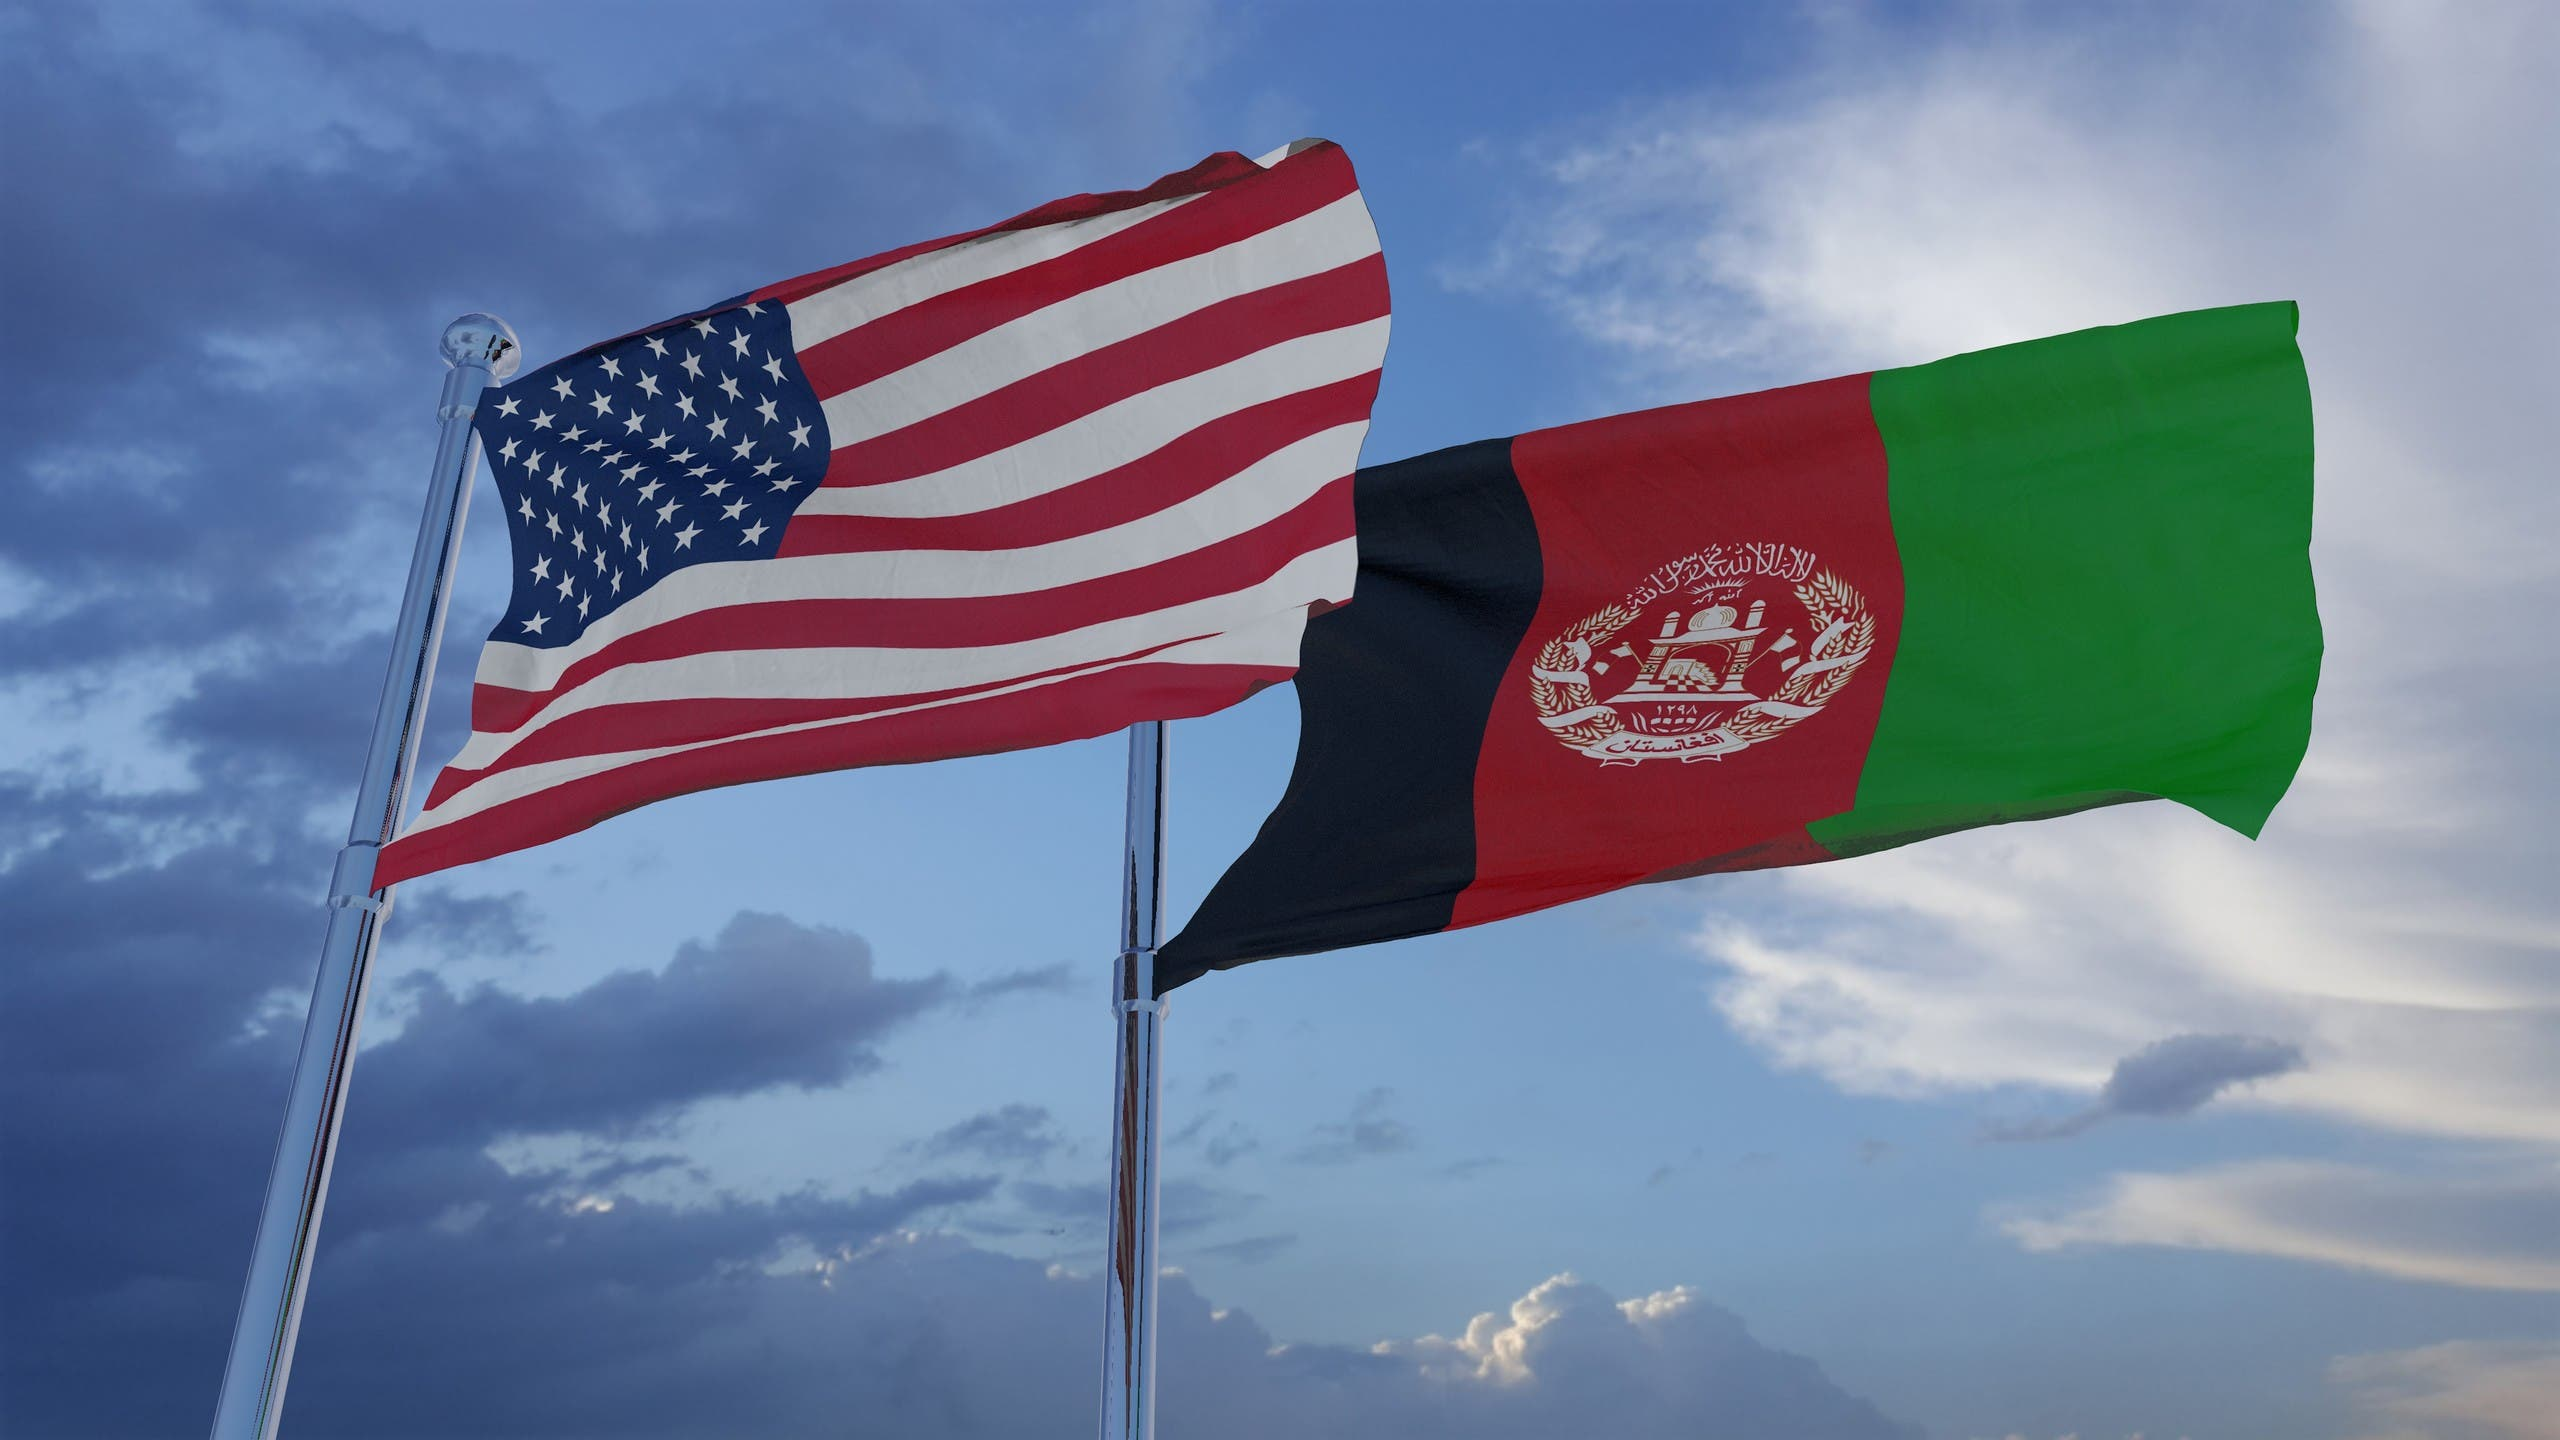 The Taliban will have its government legitimized and it will work with the West to fight terrorist groups in the country, writes Rami Rayess. (Stock photo)